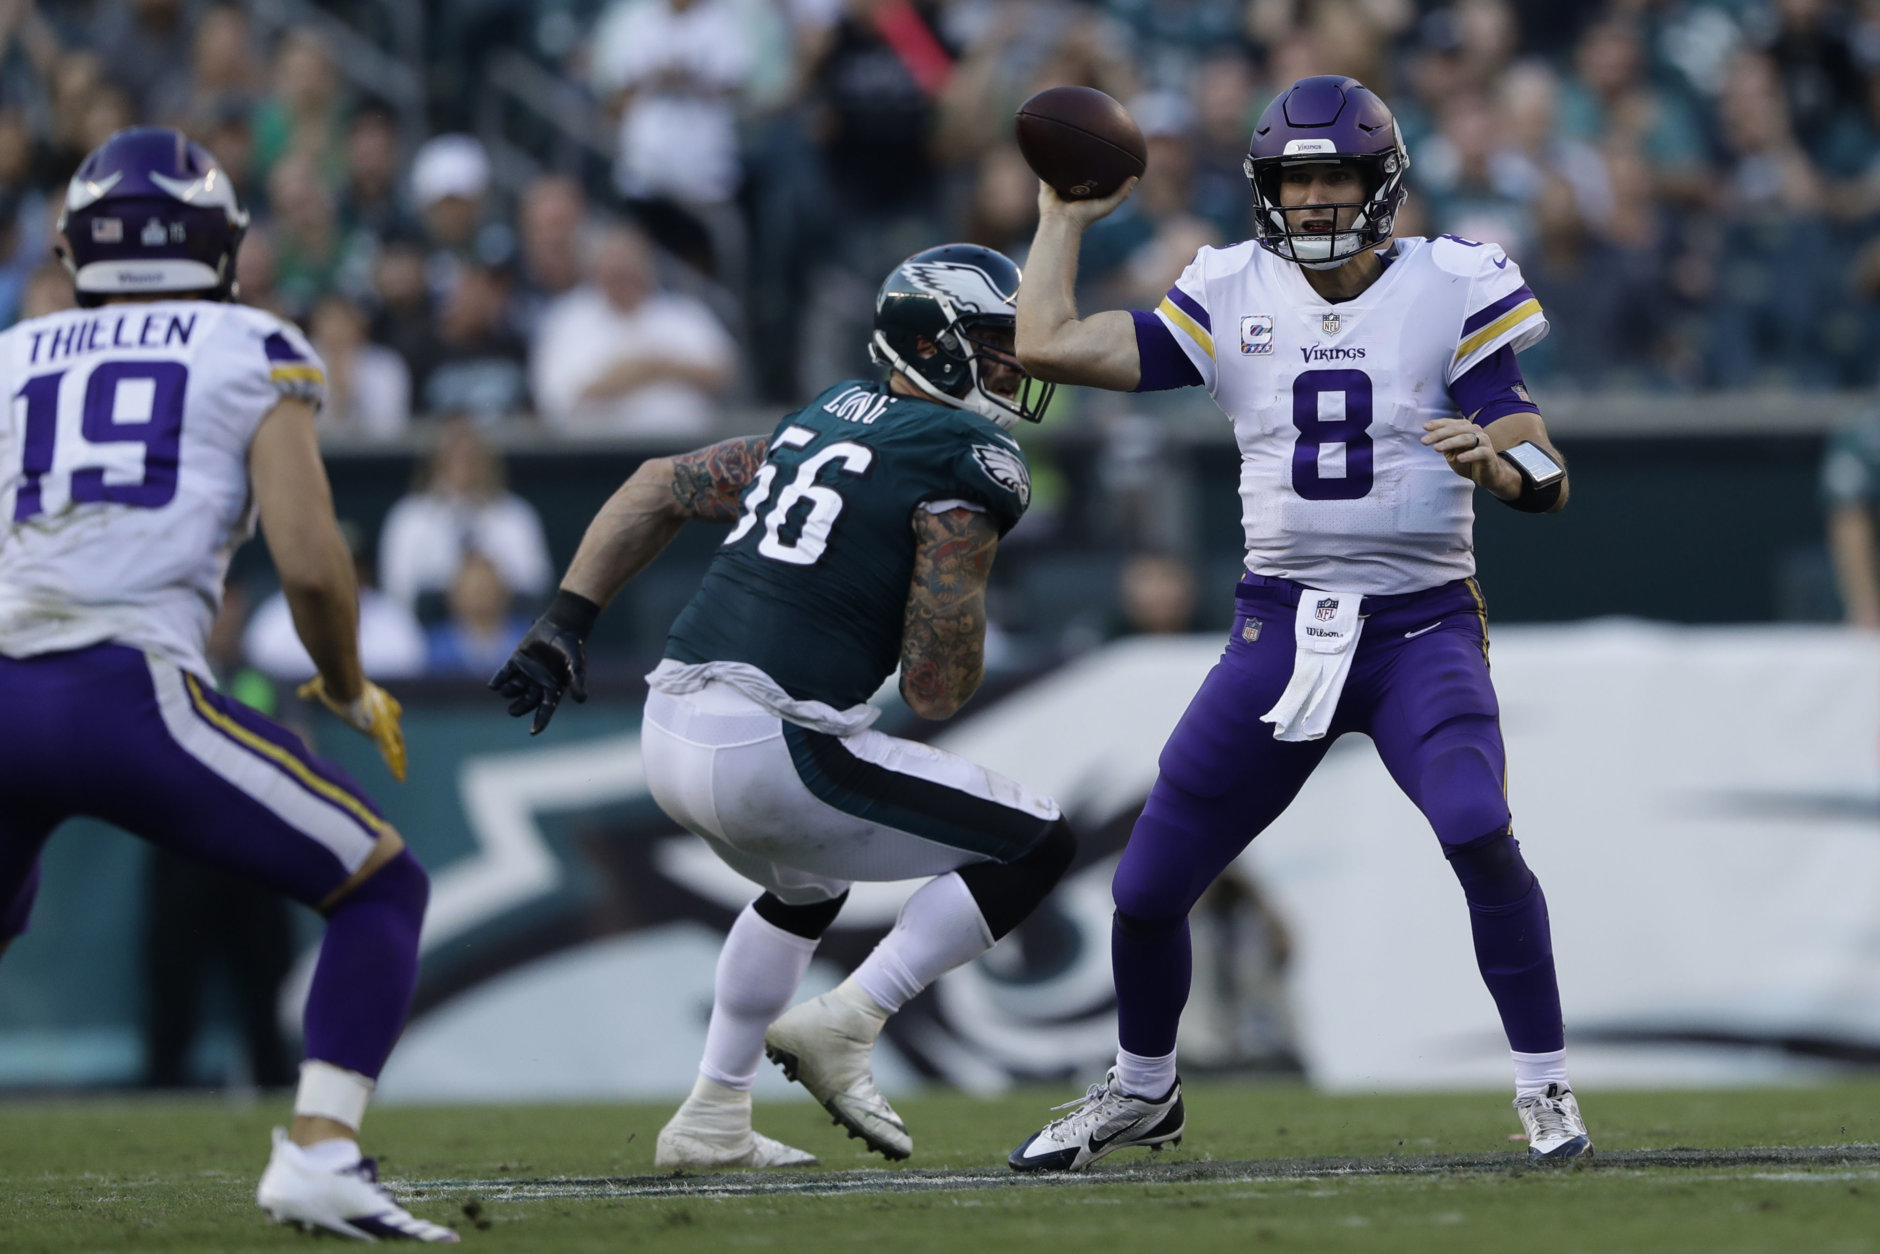 Minnesota Vikings' Kirk Cousins in action during the first half of an NFL football game against the Philadelphia Eagles, Sunday, Oct. 7, 2018, in Philadelphia. (AP Photo/Michael Perez)